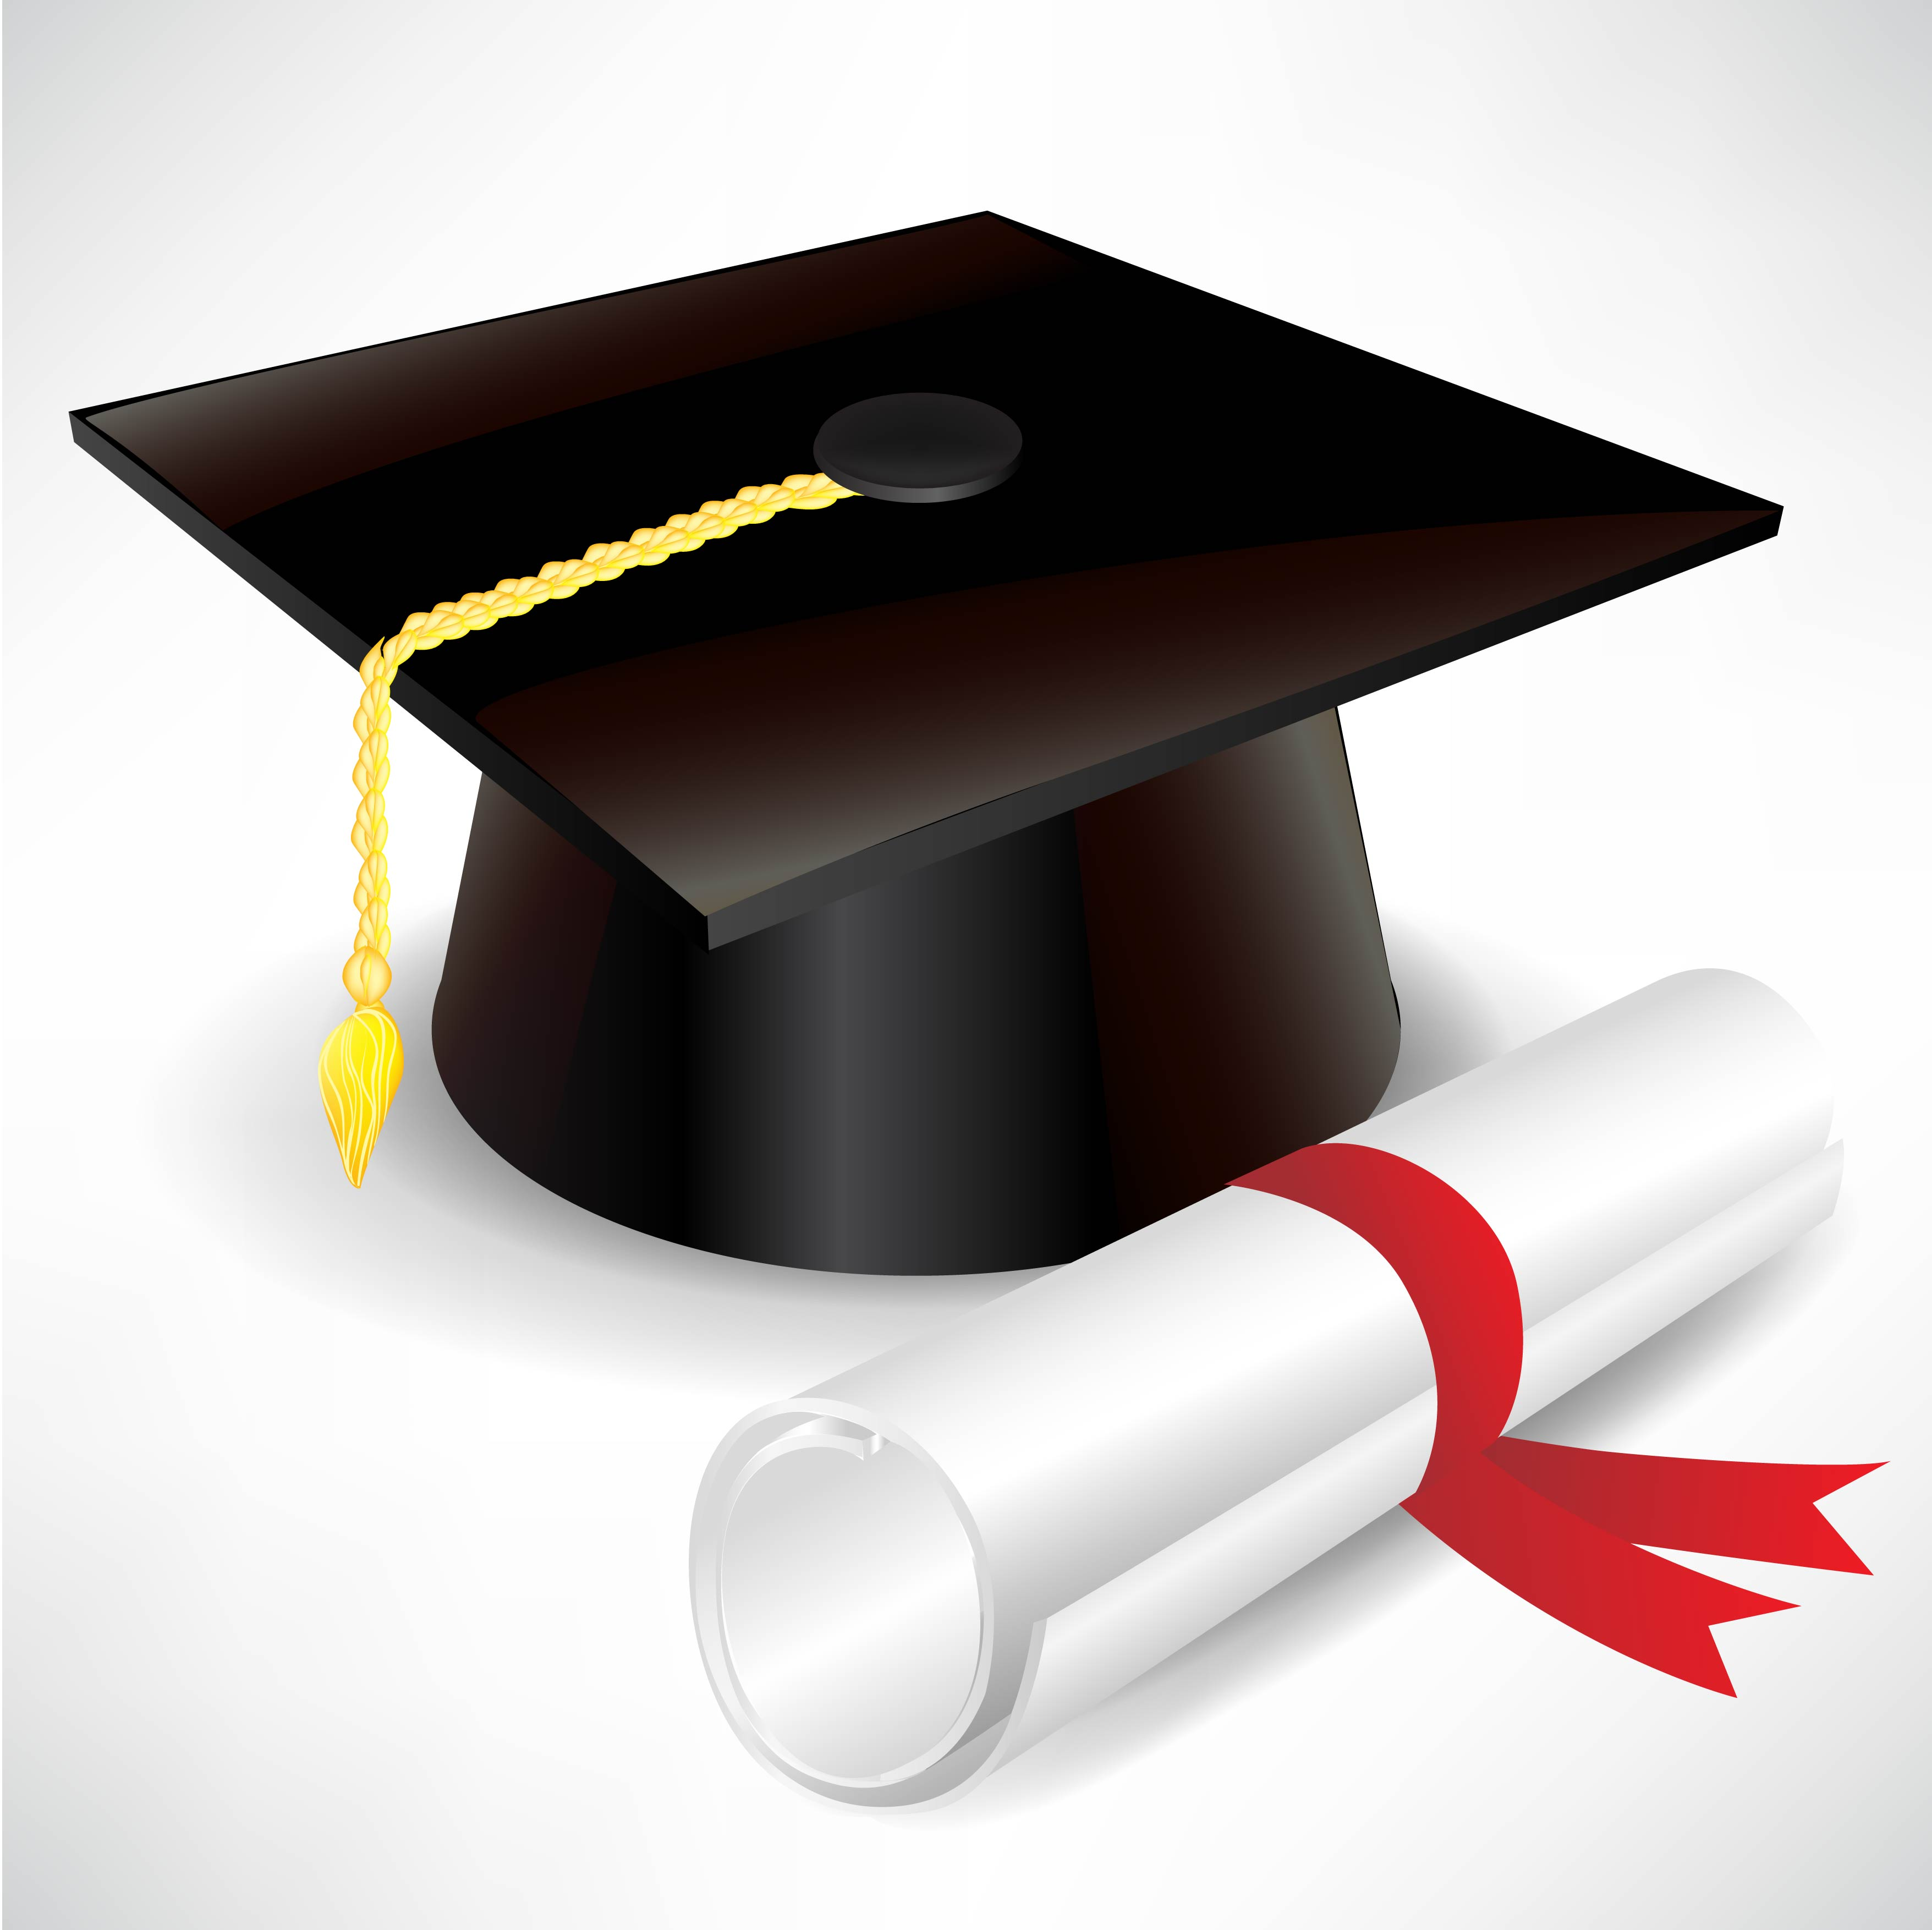 free graduation vector cliparts co cap and diploma clip art clear background graduation cap and diploma clipart png